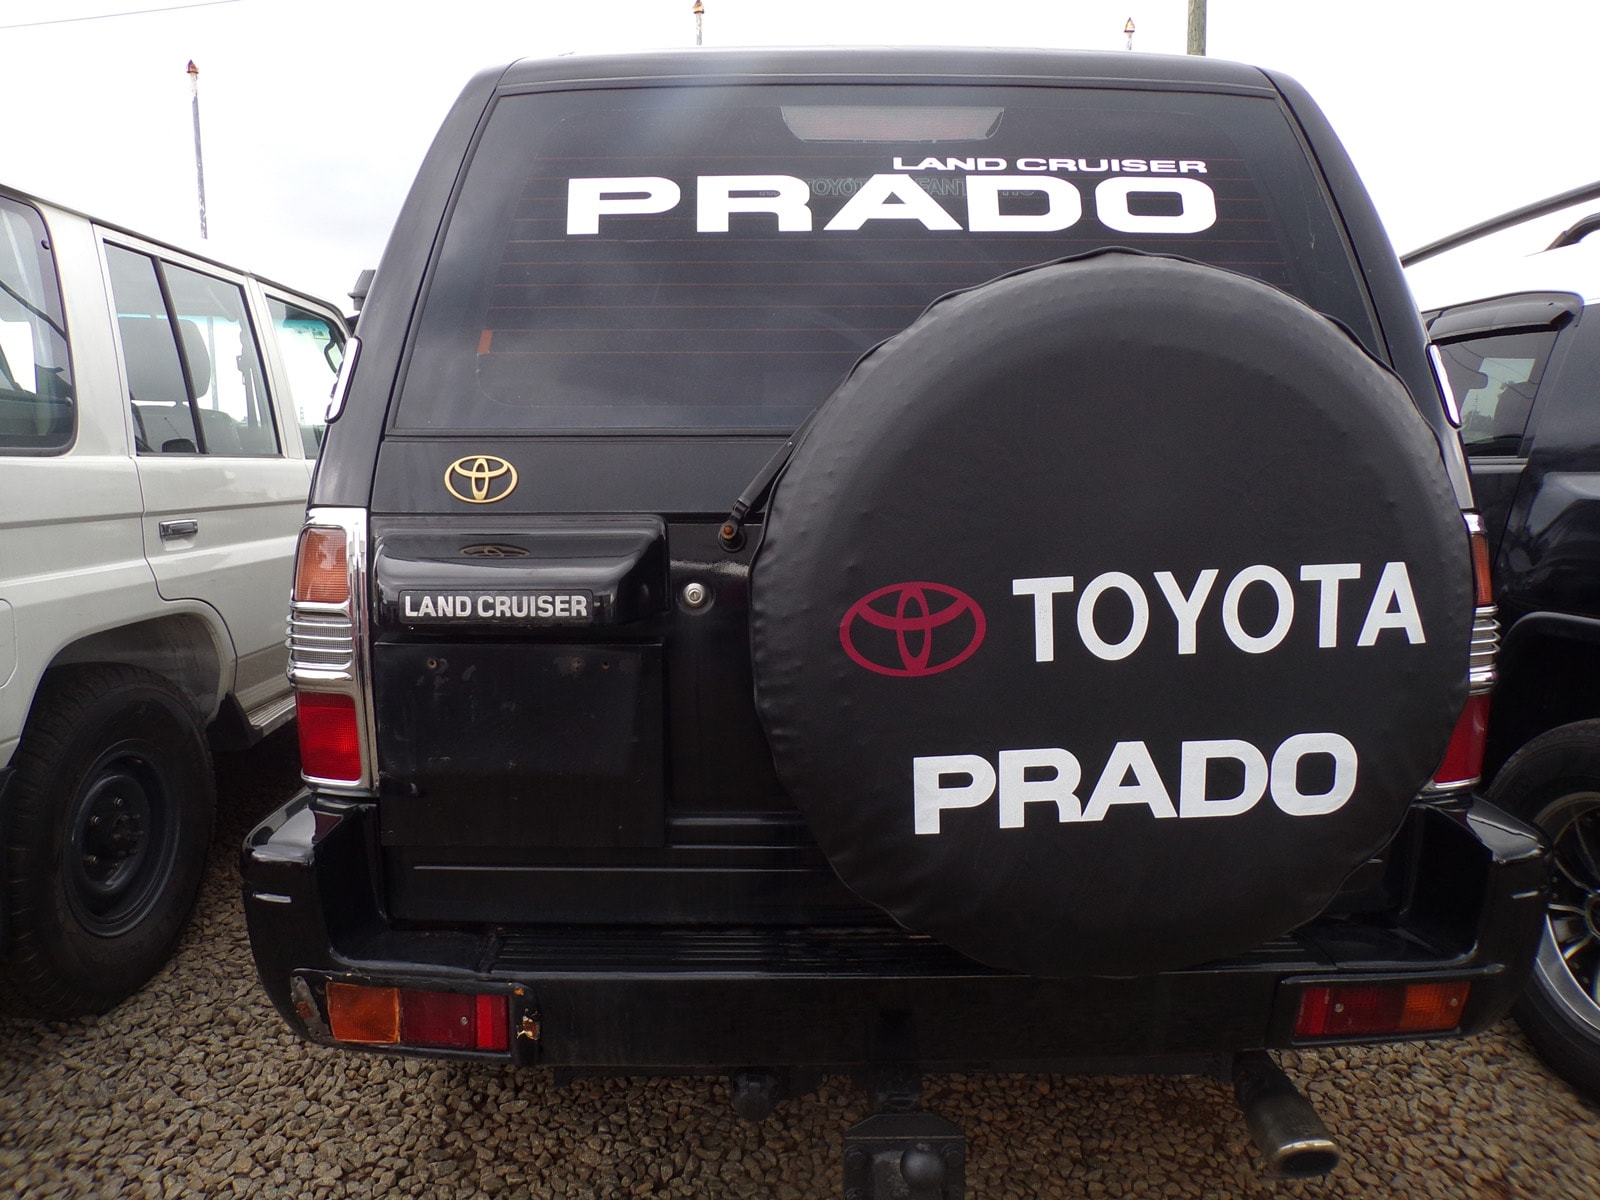 2006 Honda Pilot For Sale >> Toyota Land Cruiser Prado 4WD 1999 Model | 5000 USD and Above, Cars for Sale, Toyota in Liberia